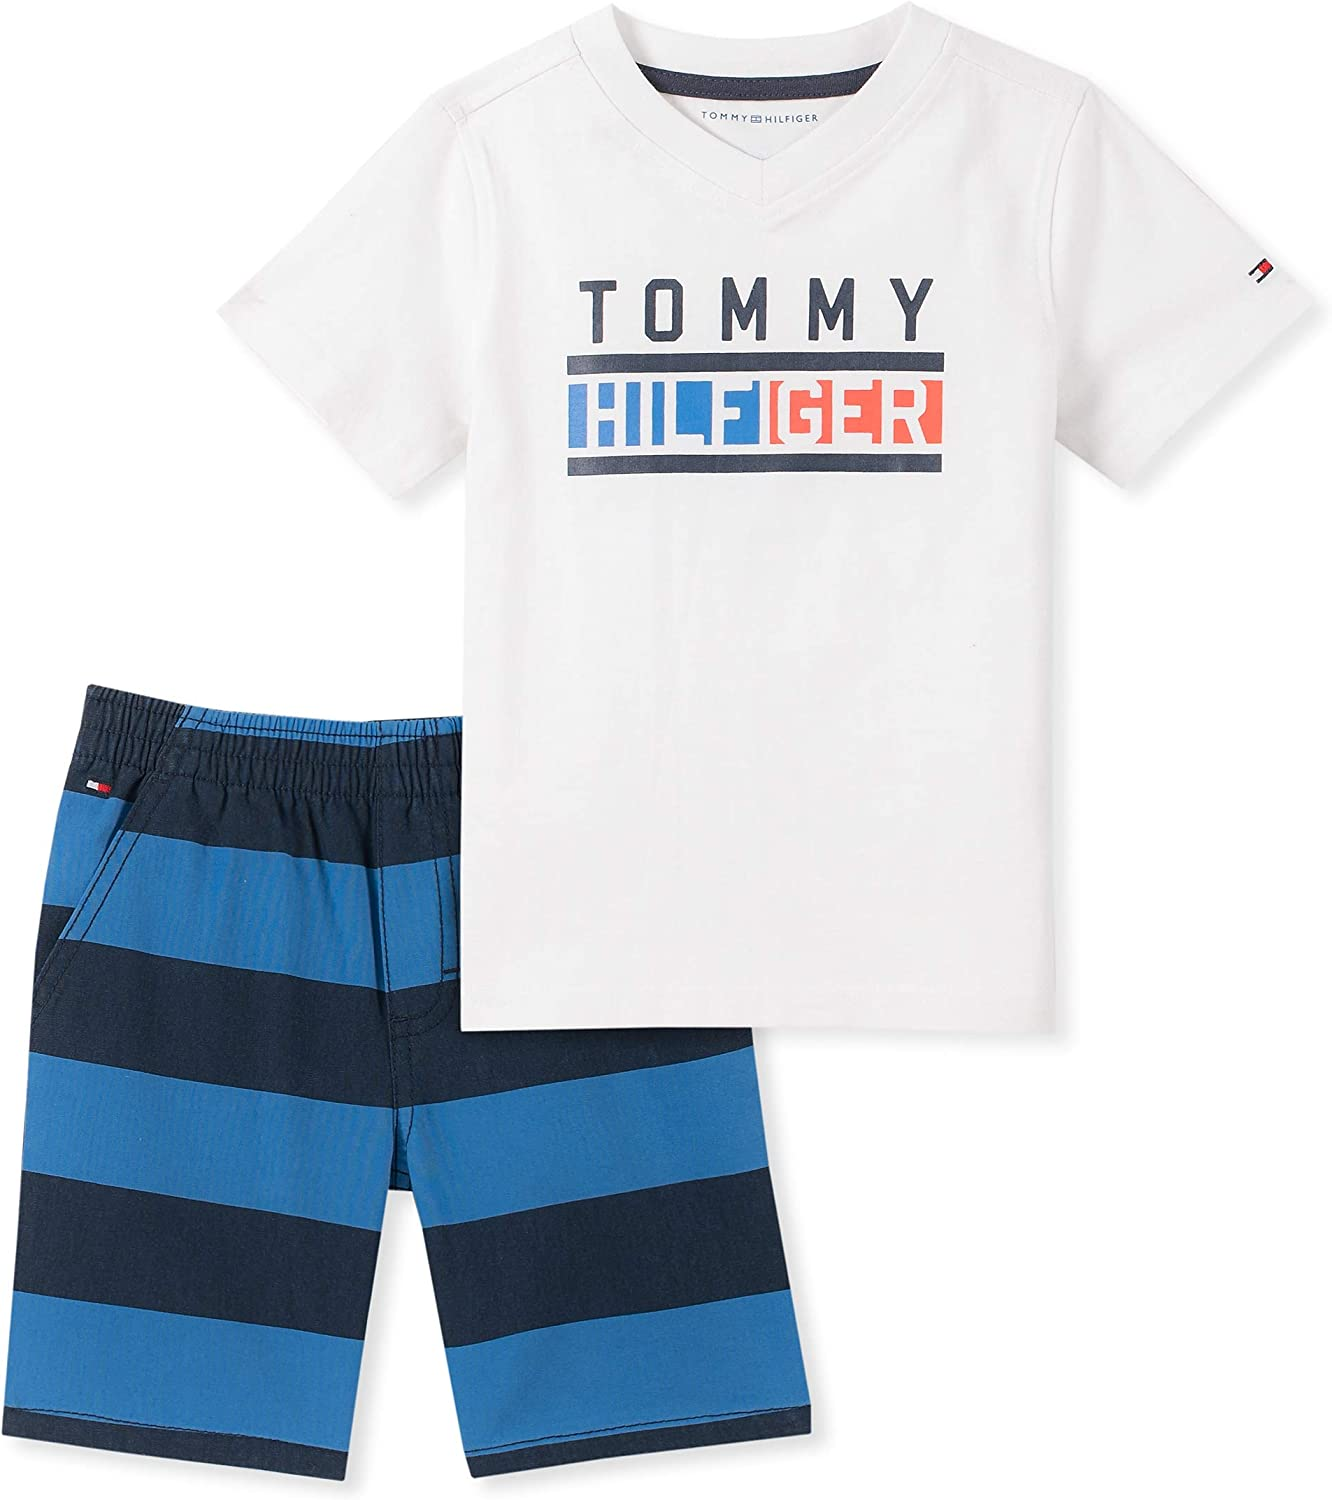 Tommy Hilfiger Baby Boys 2 Pieces Shorts Set